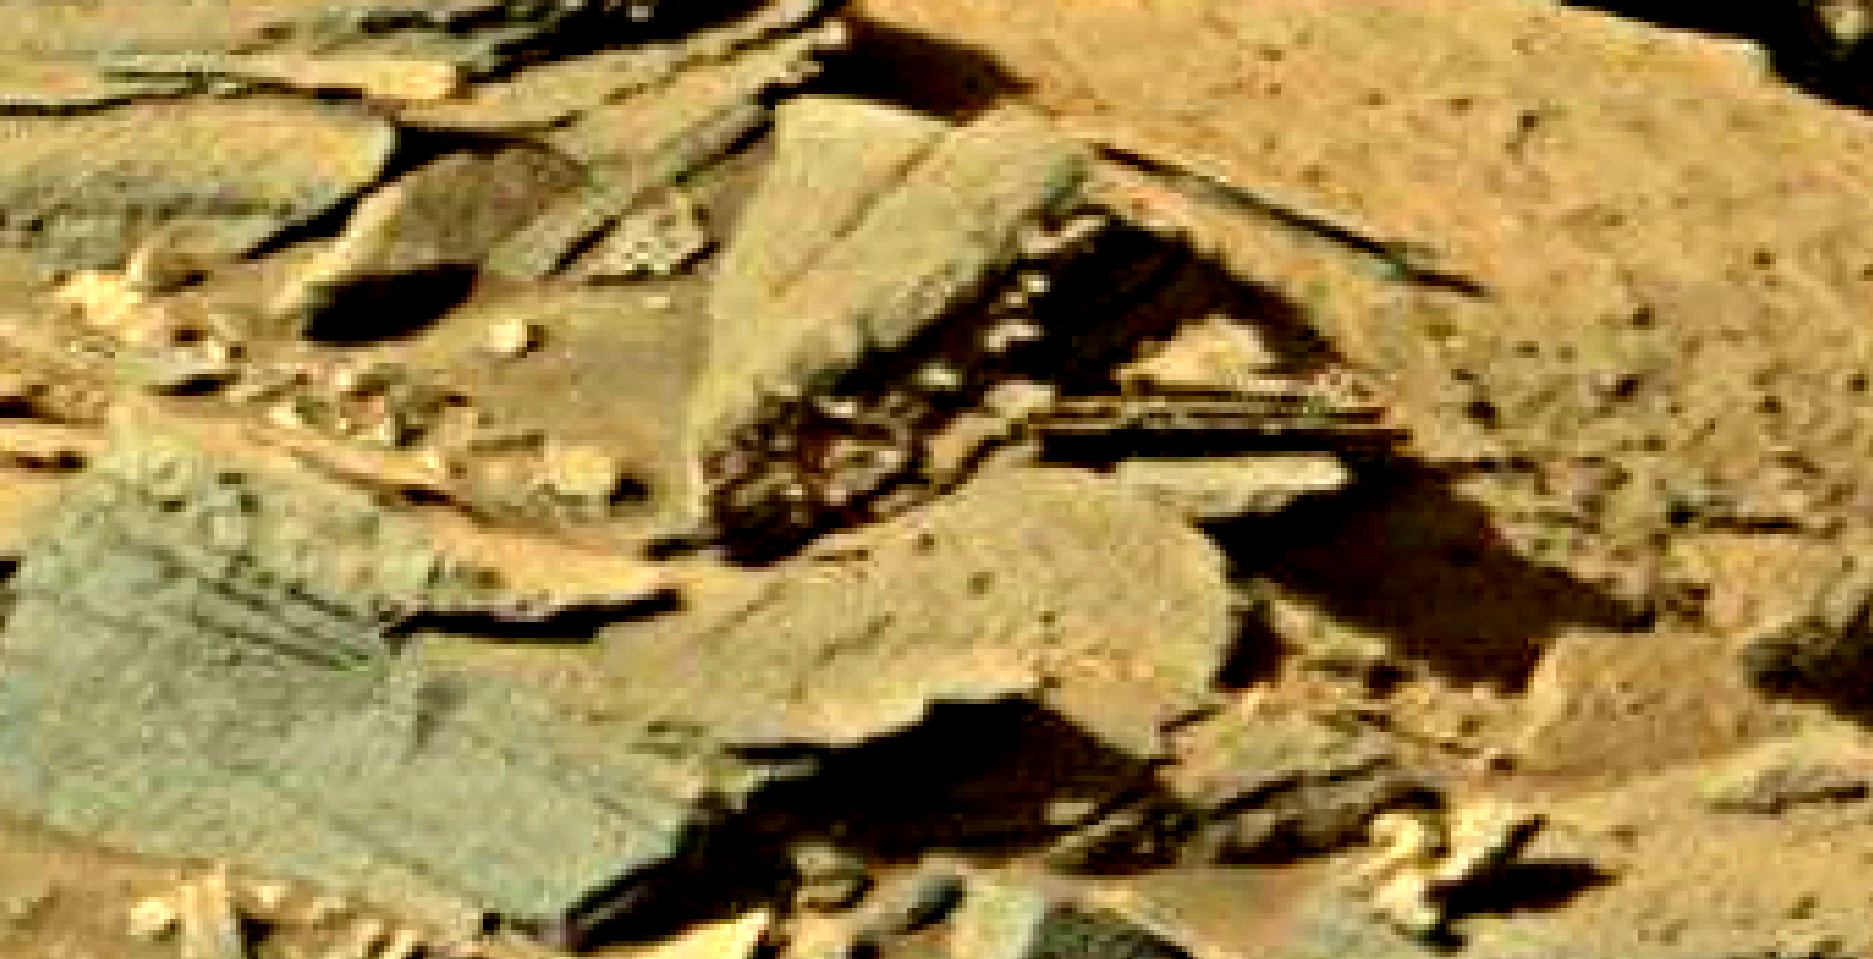 mars sol 1301 anomaly-artifacts 8 was life on mars